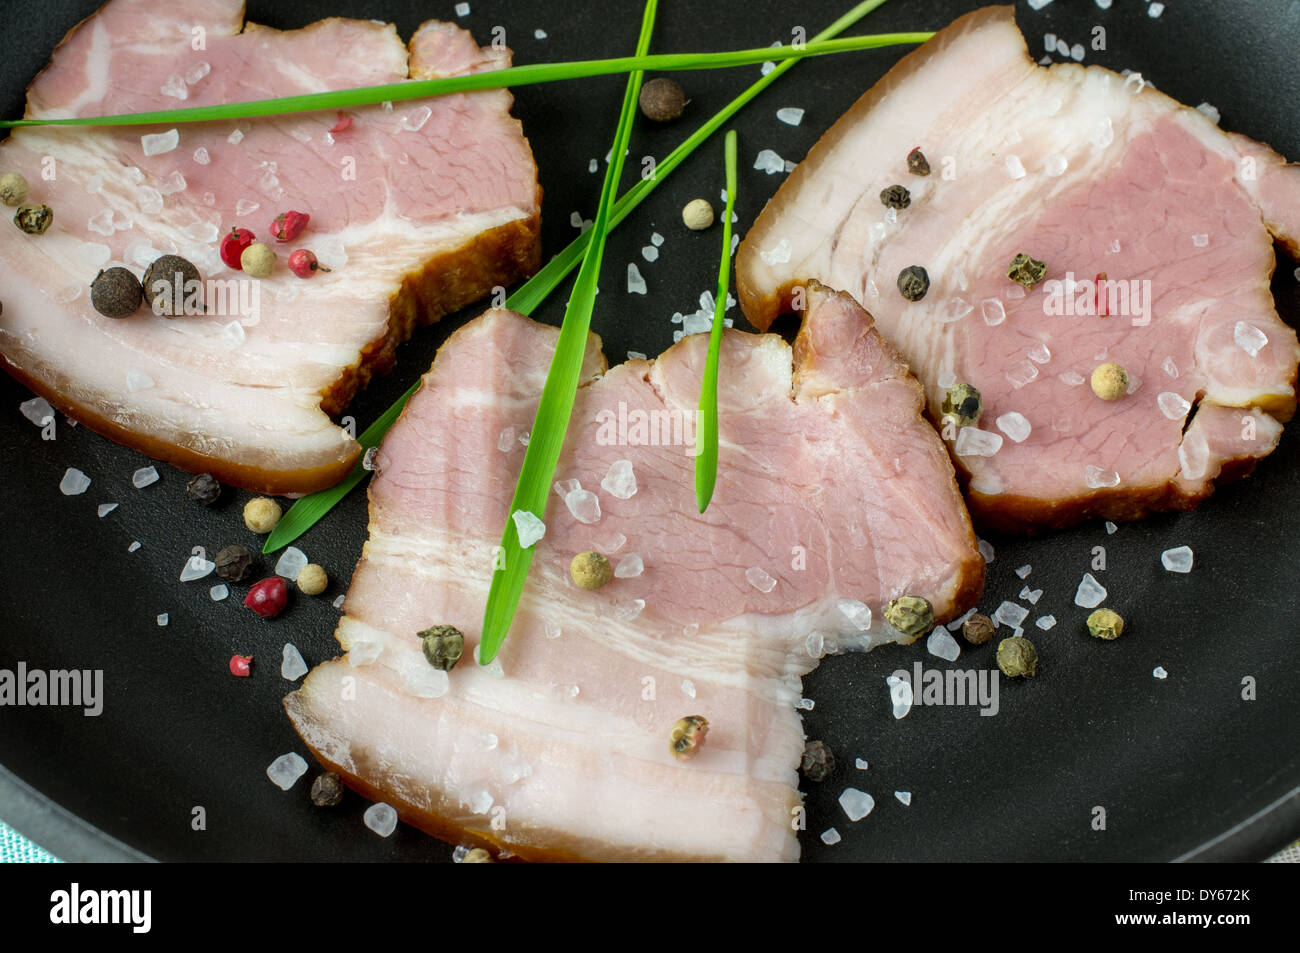 Pieces of bacon on a black frying pan with spices, salt and herbs. - Stock Image